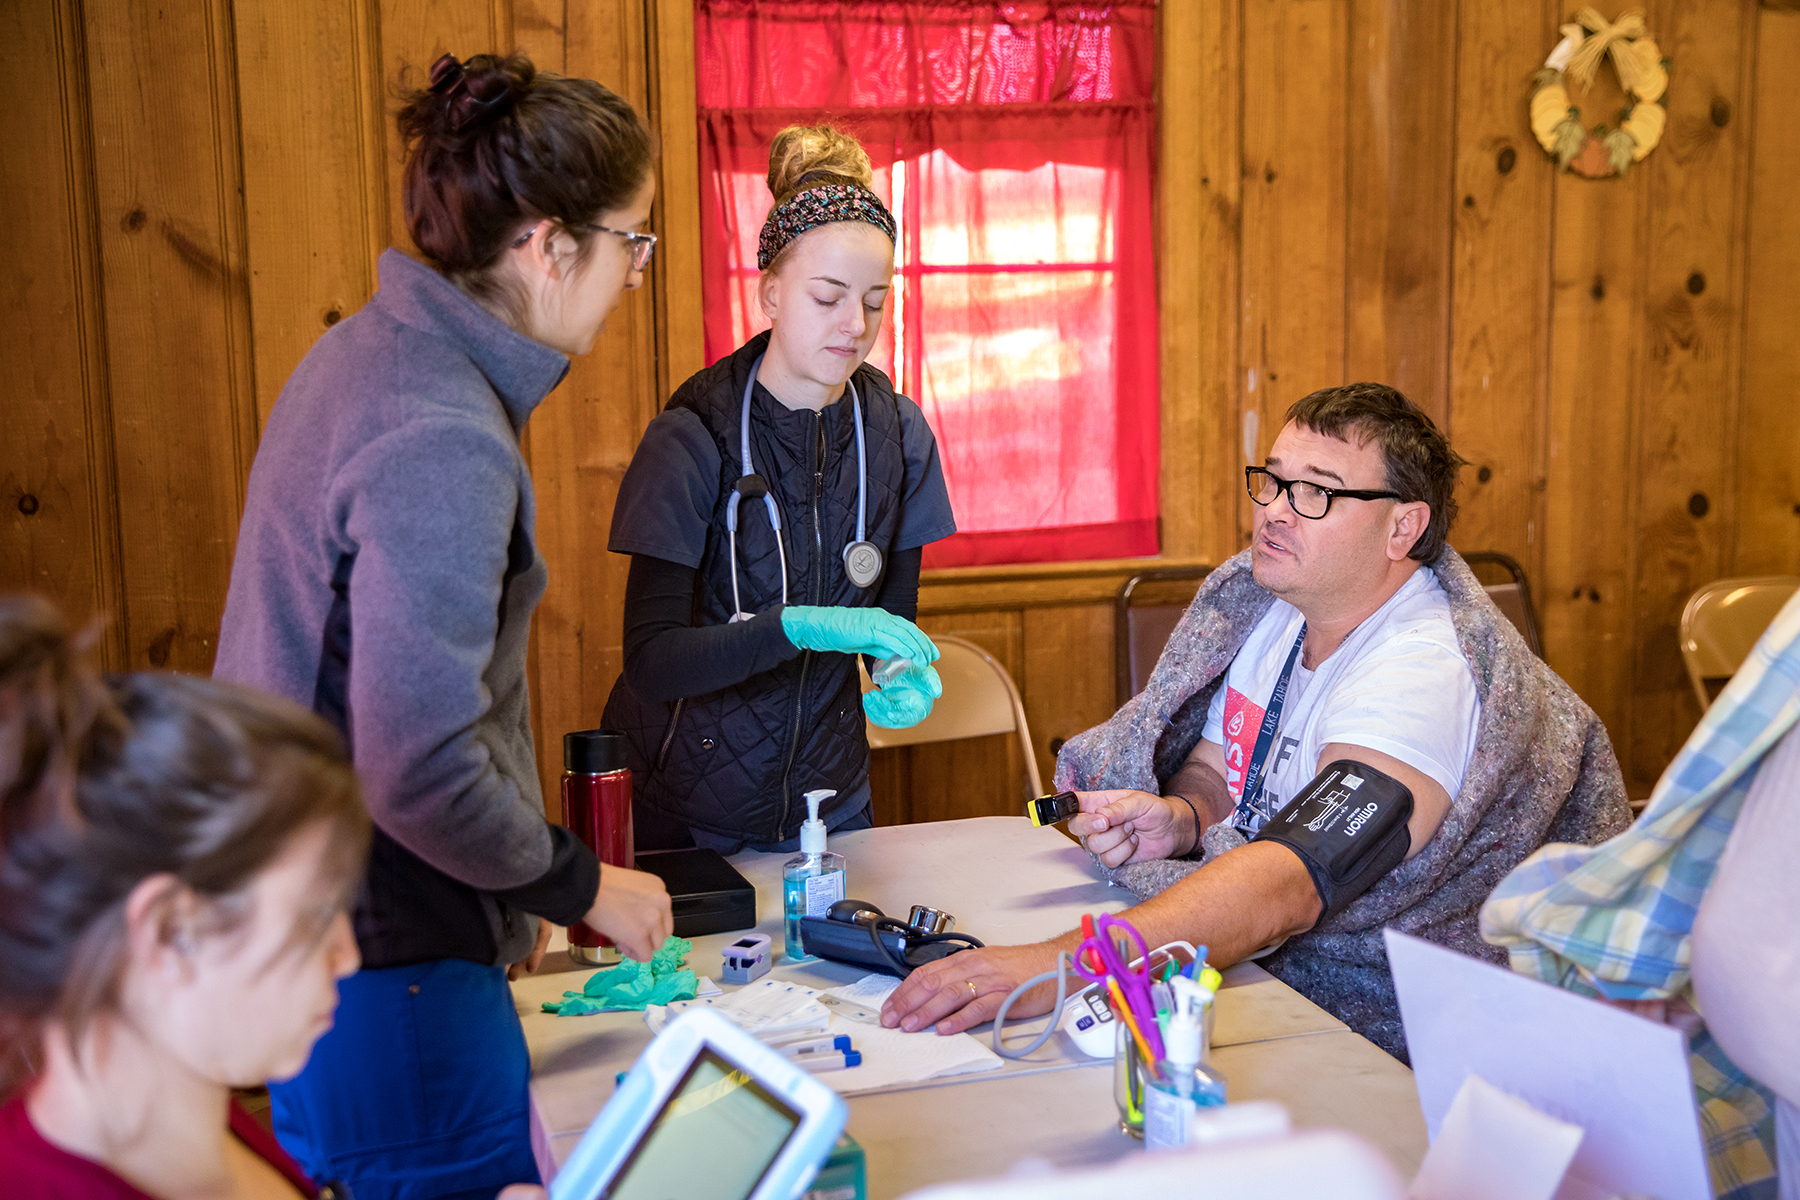 Volunteers at free clinic Medspire, take a patient's vitals during a clinic day in Magalia, California. The free clinic was started to address unmet needs of vulnerable residents after the Camp Fire destroyed most of neighboring Paradise. (Mark Semegen for Direct Relief)